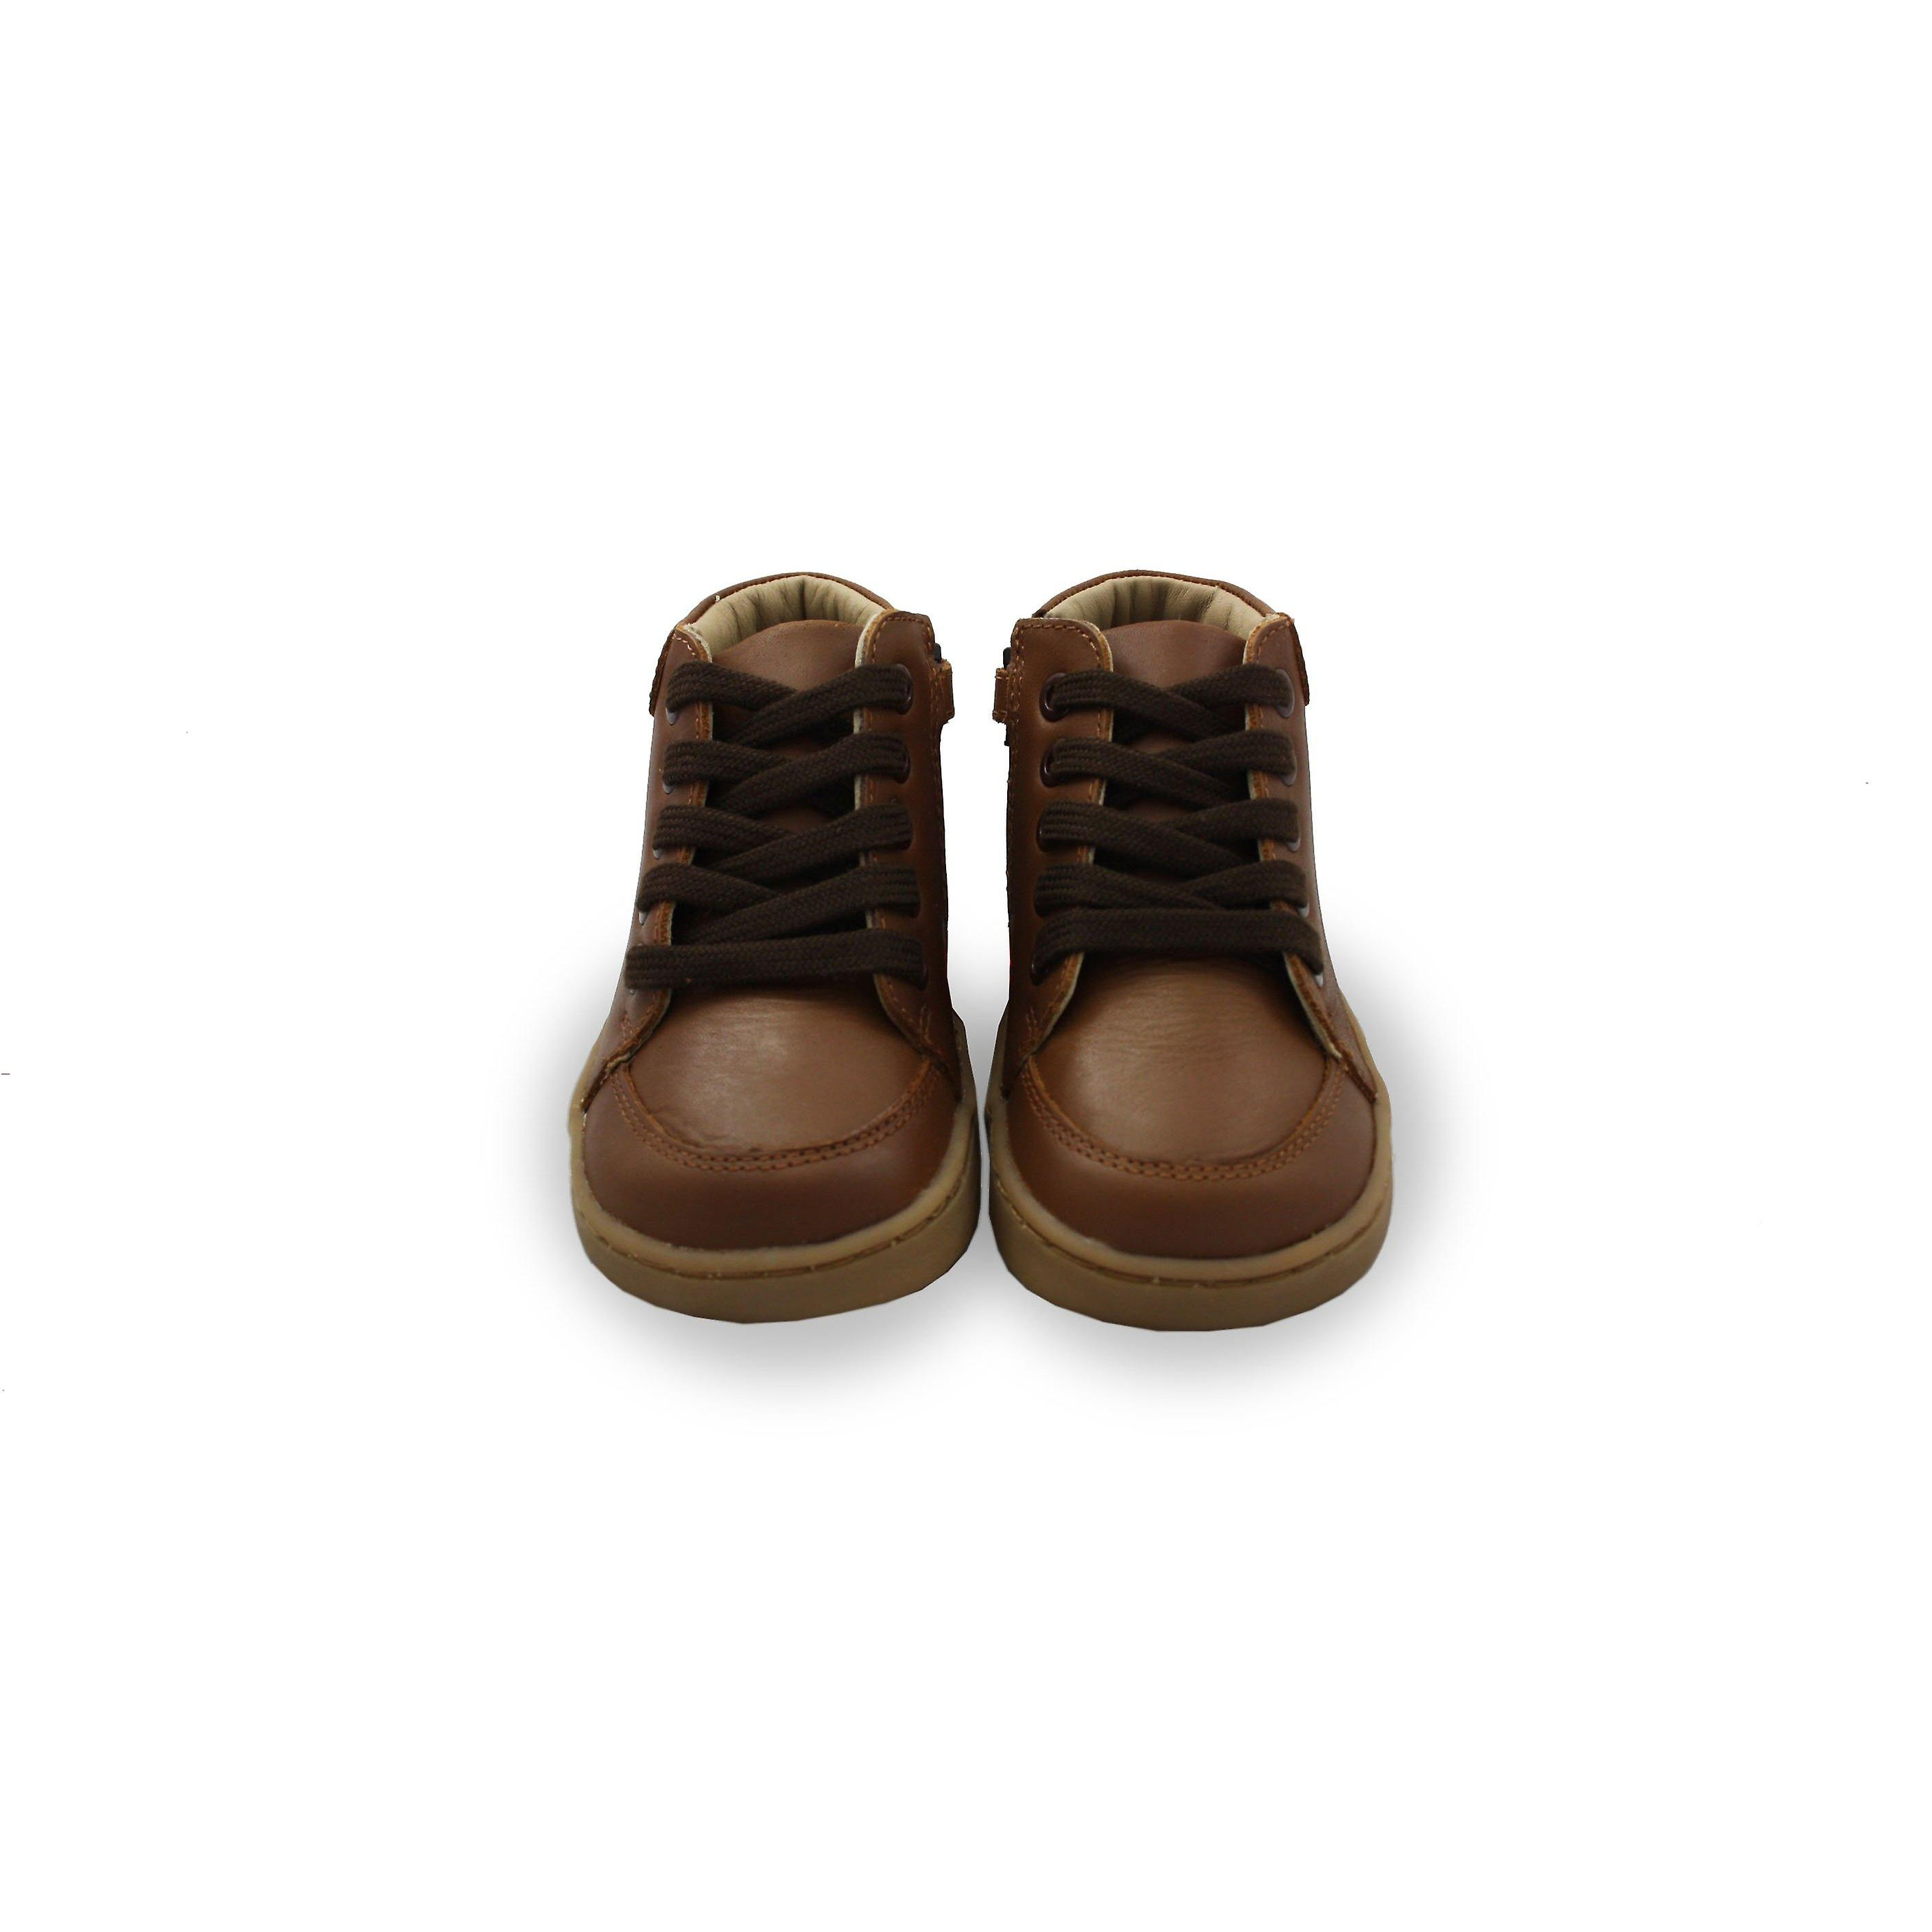 Scholl Tan Billy Ankle Boots